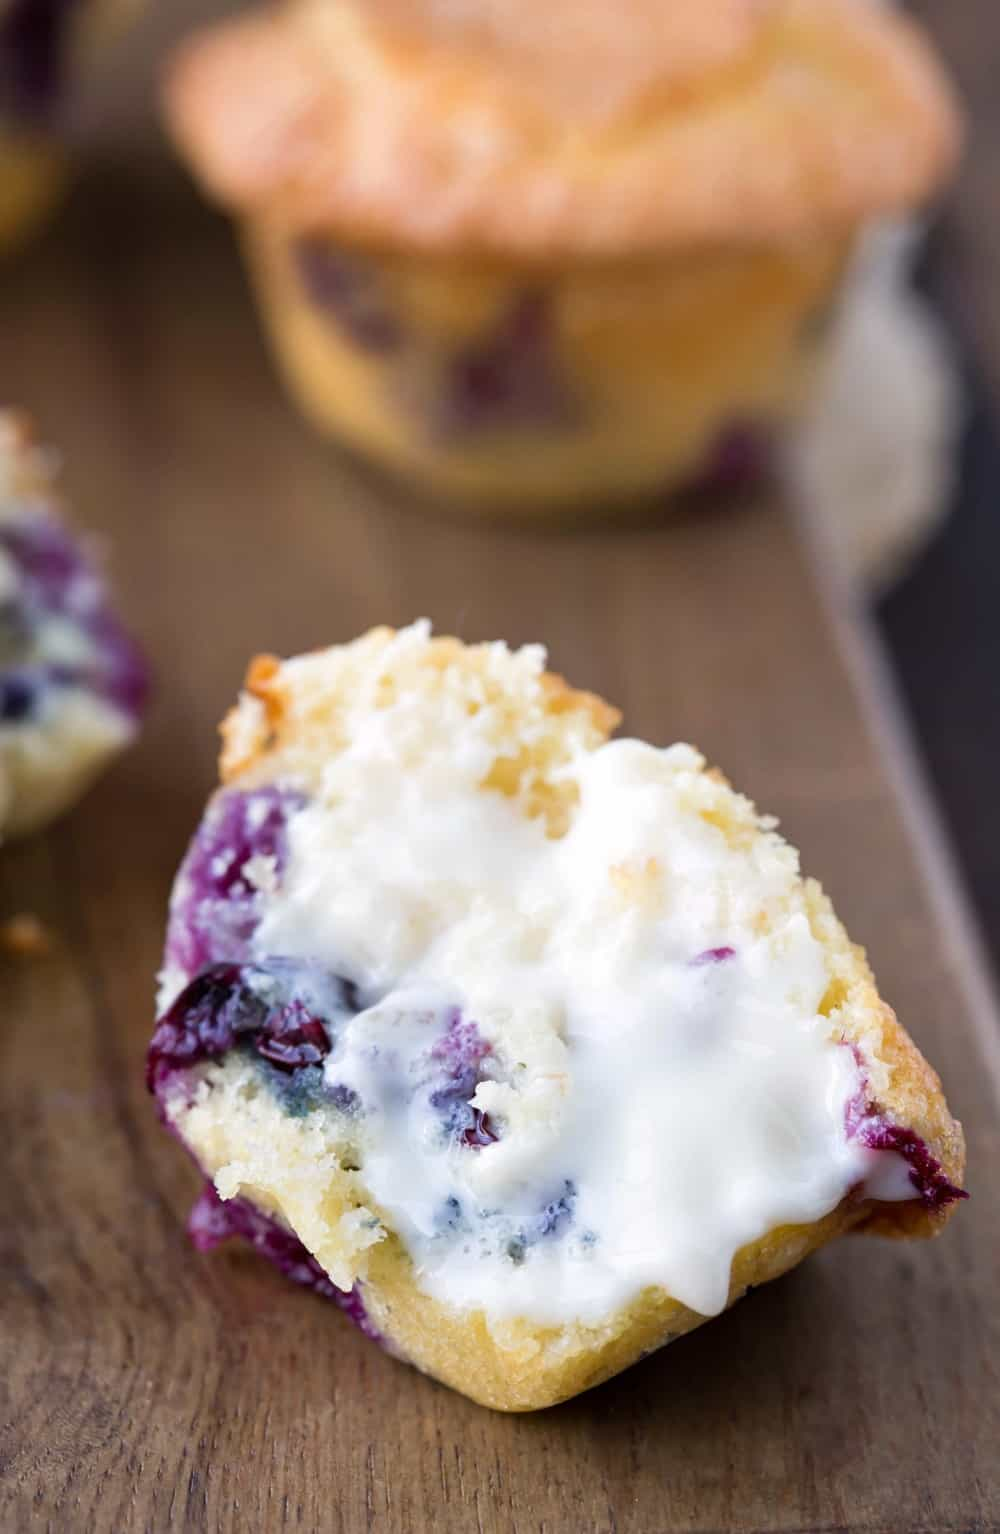 Half of a buttered Bakery Style Blueberry Muffin on a wooden cutting board